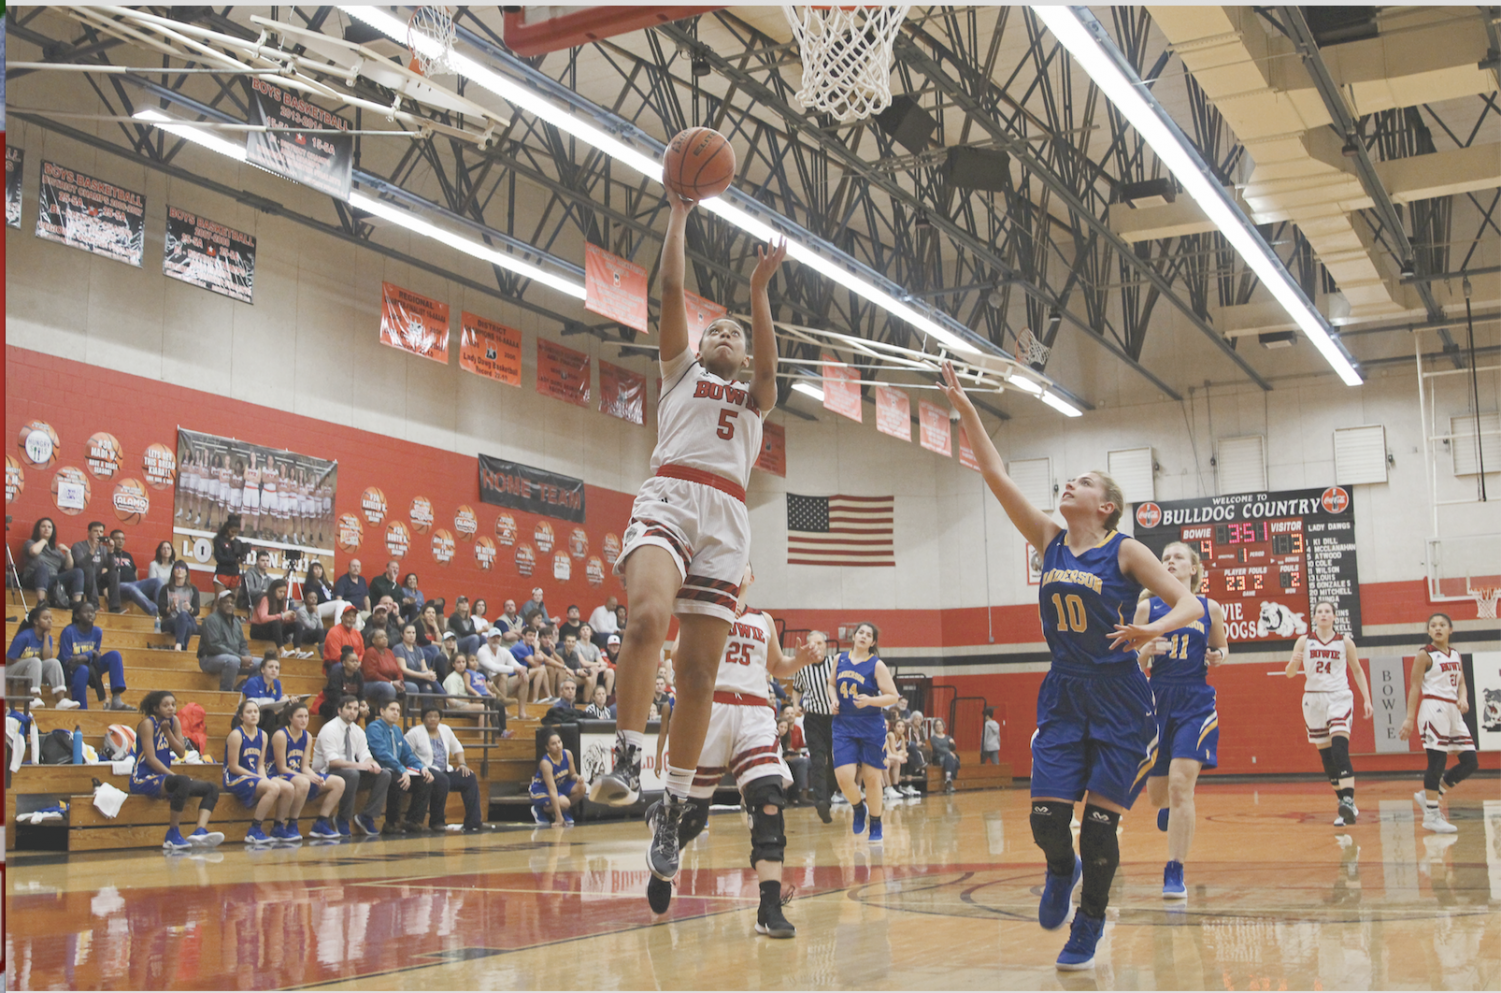 Senior Hailey Atwood leaps up to score a lay-up. Atwood was nominated for McDonald's All-American.